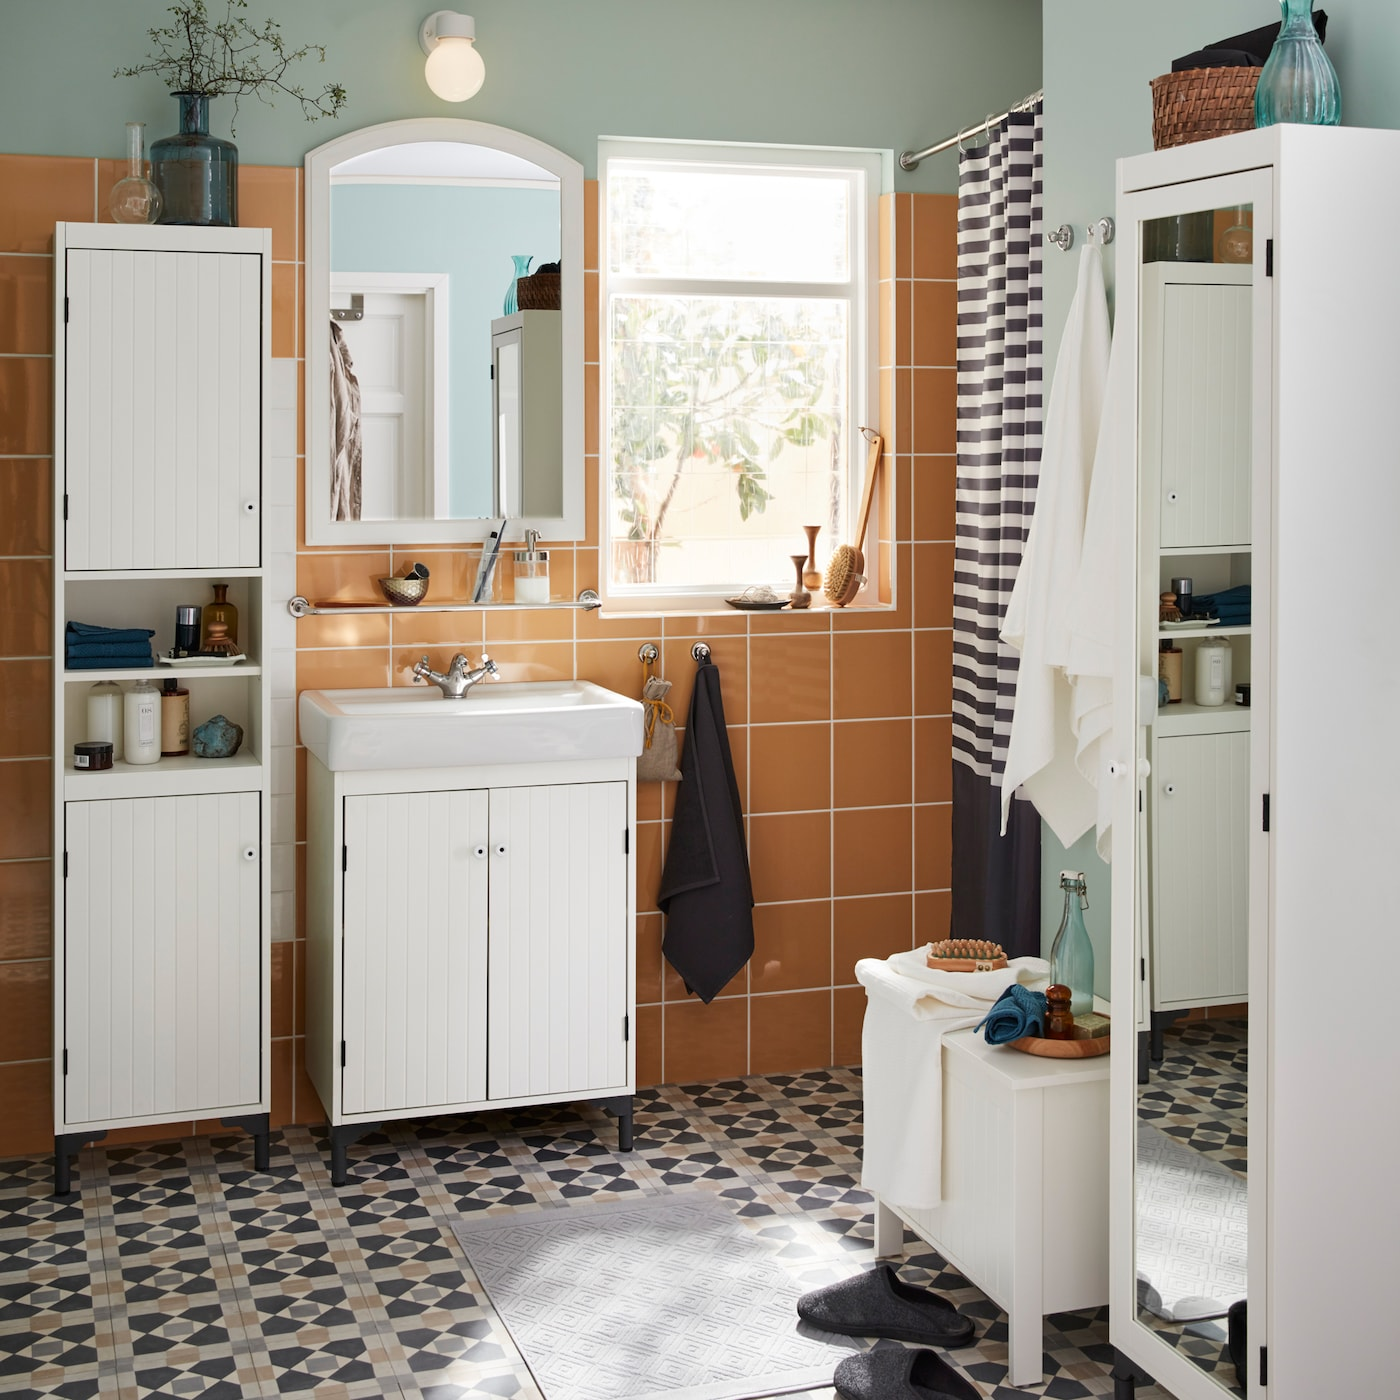 Modernise your bathroom with the traditional IKEA SILVERÅN series, from white panelled cabinet doors to slim closets to even small space storage benches.